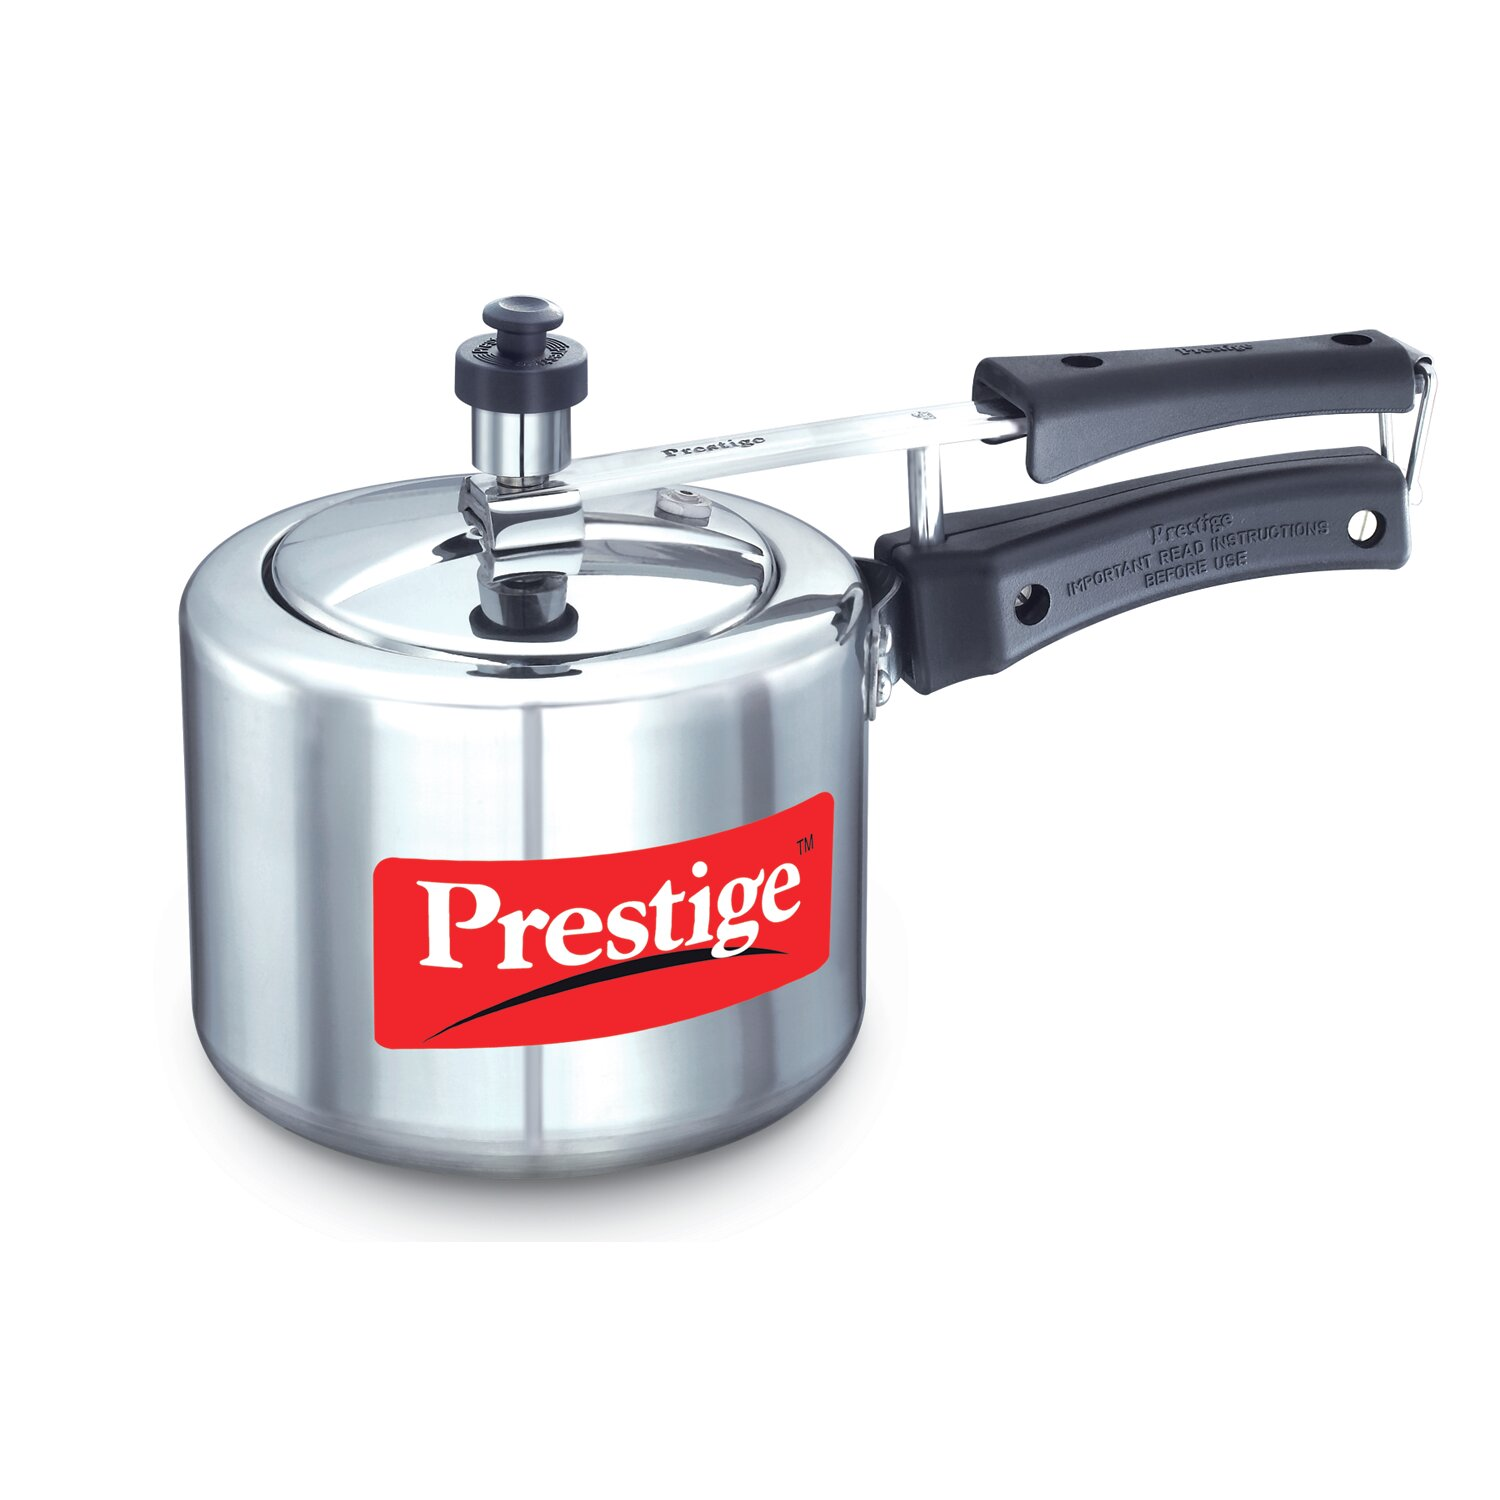 prestige pressure cooker price list